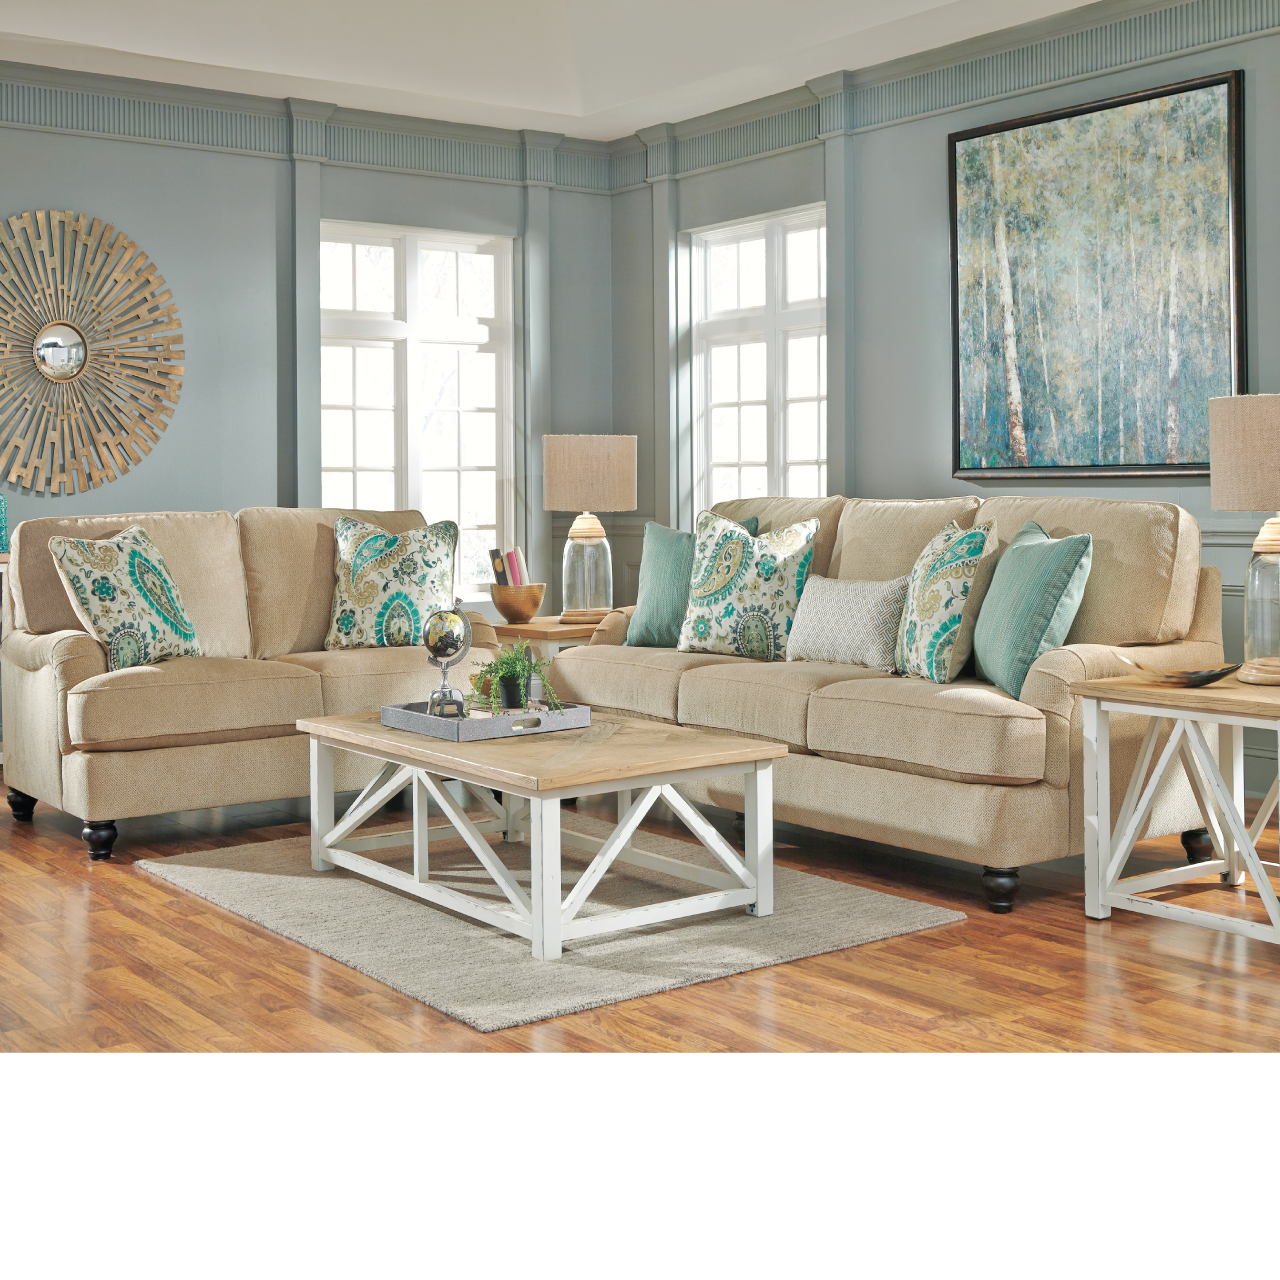 Room Coastal Living Ideas Lochian Sofa